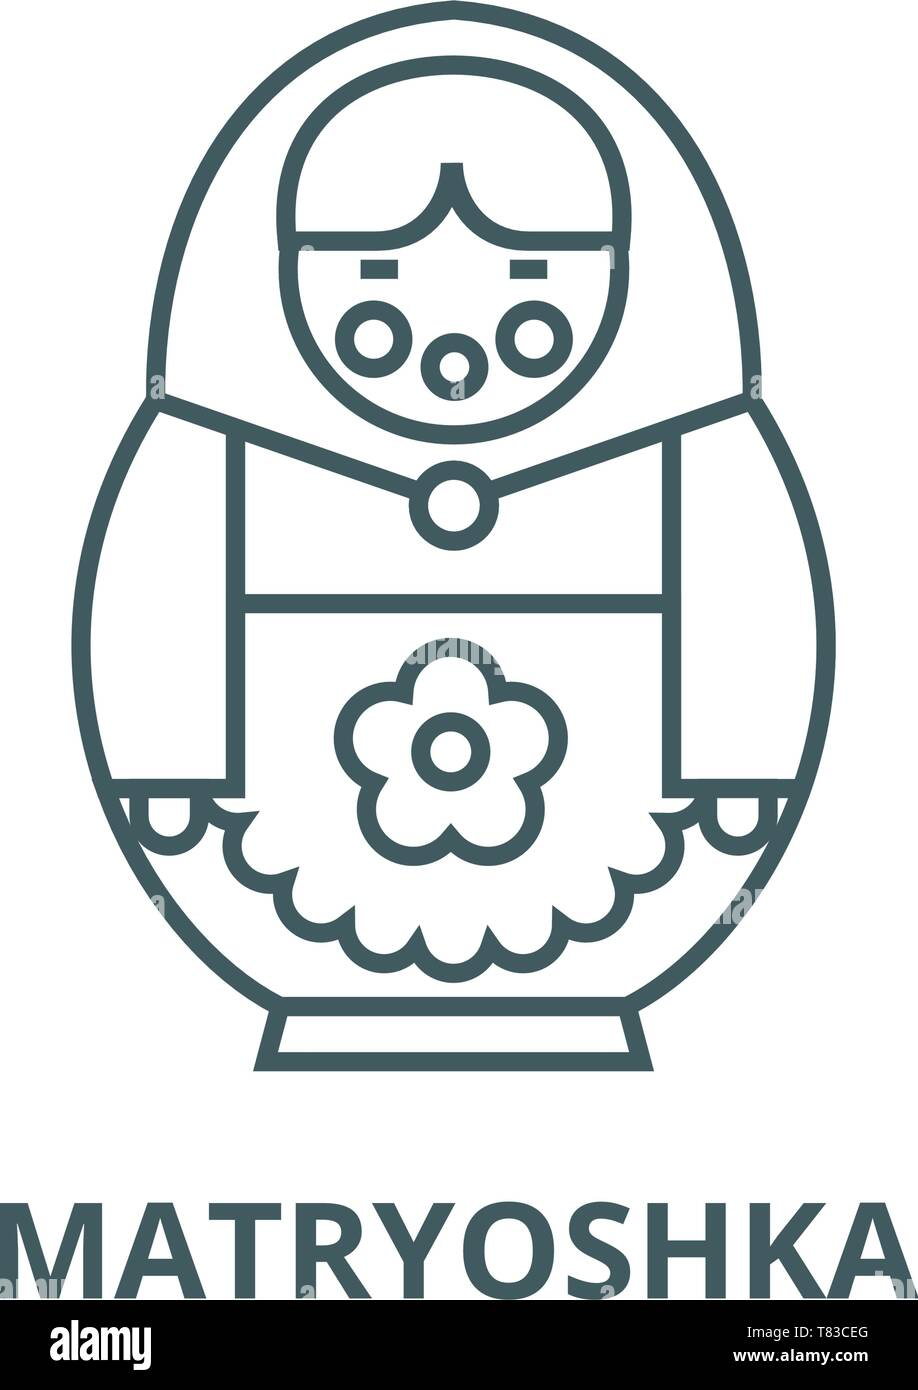 Matryoshka vector line icon, linear concept, outline sign, symbol - Stock Image